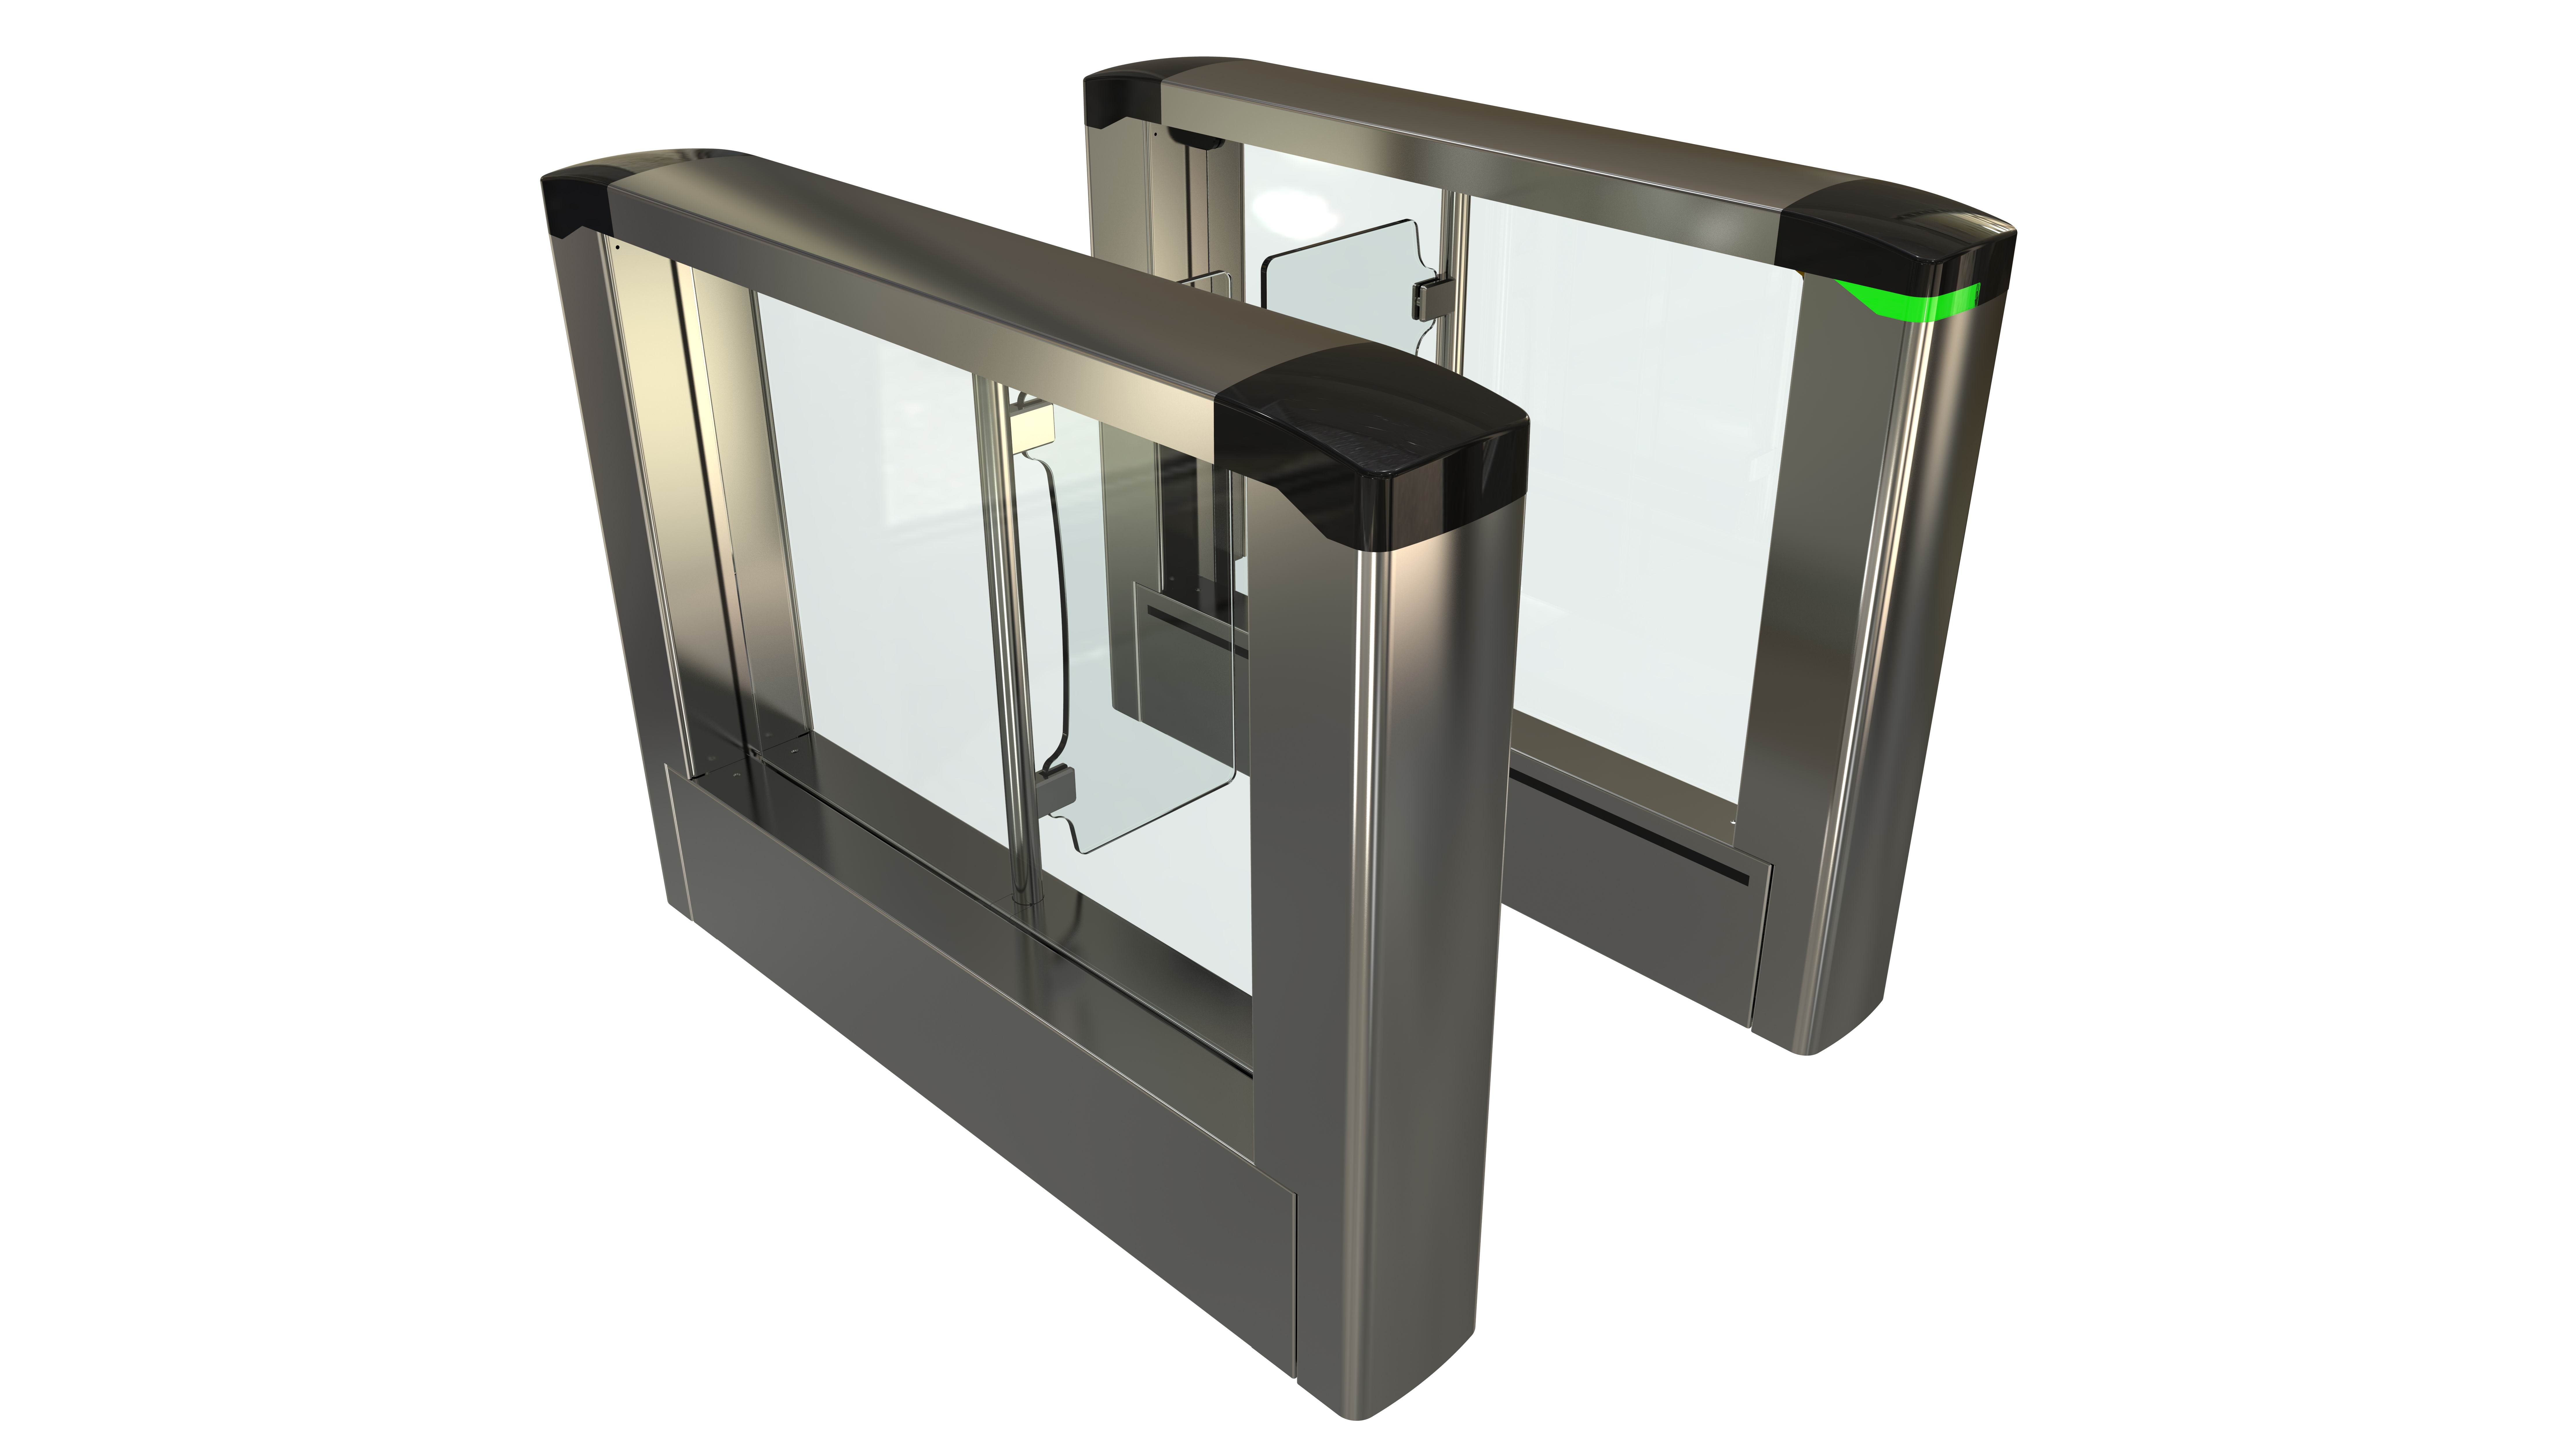 Ifsec product launch automatic systems to showcase